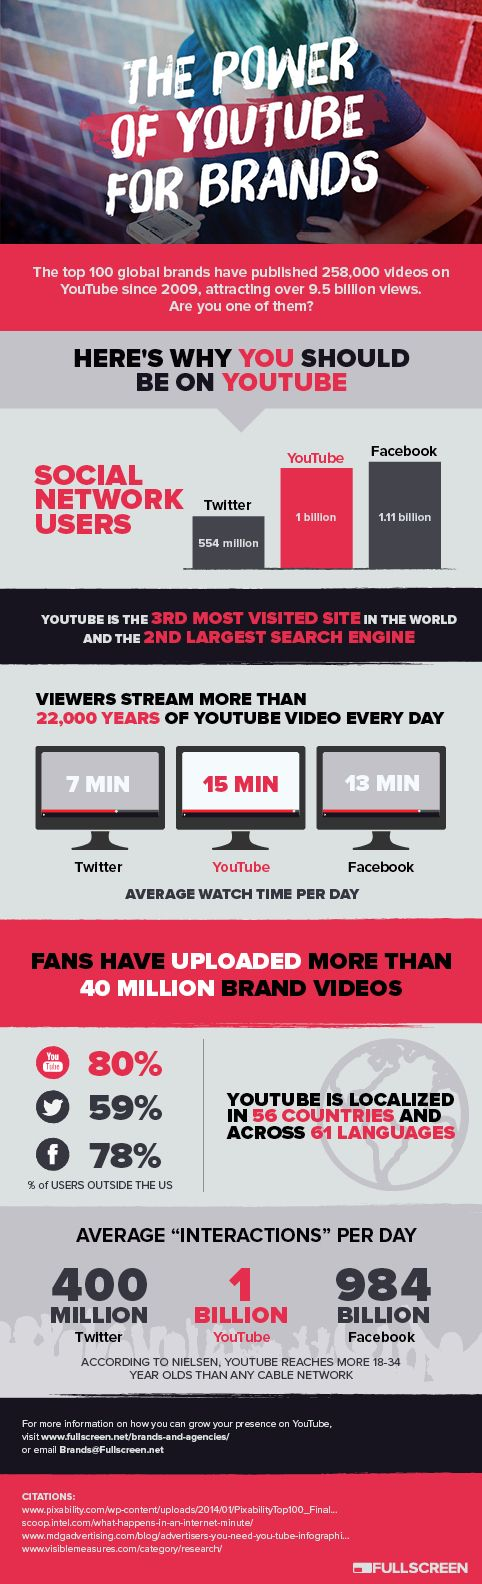 The Power of YouTube for Brands [Infographic]